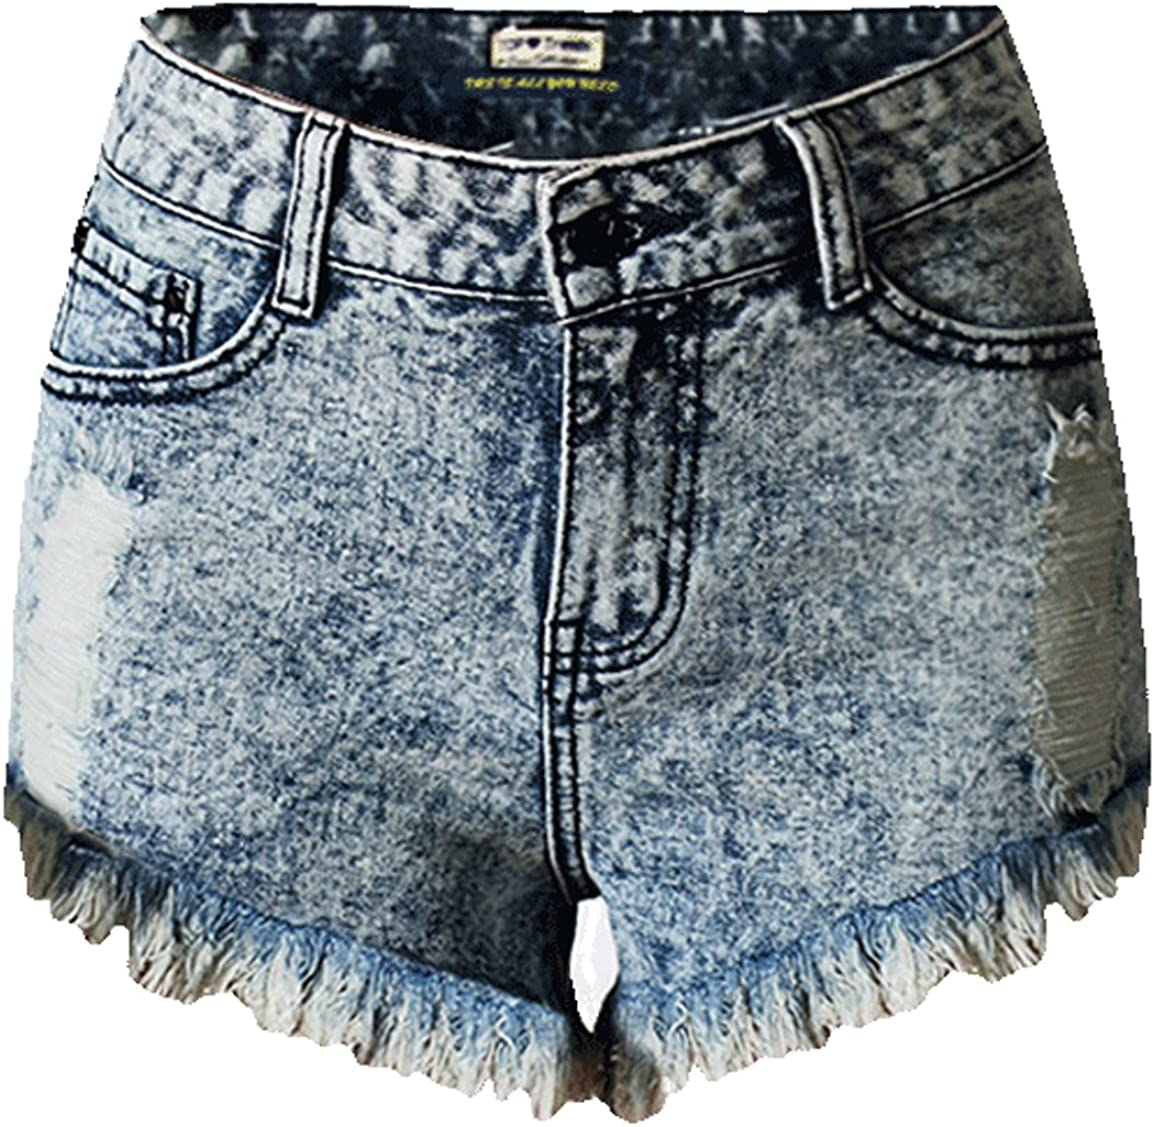 Youhan Womens Ripped Hole Frayed High Waist Denim Hot Pants Shorts